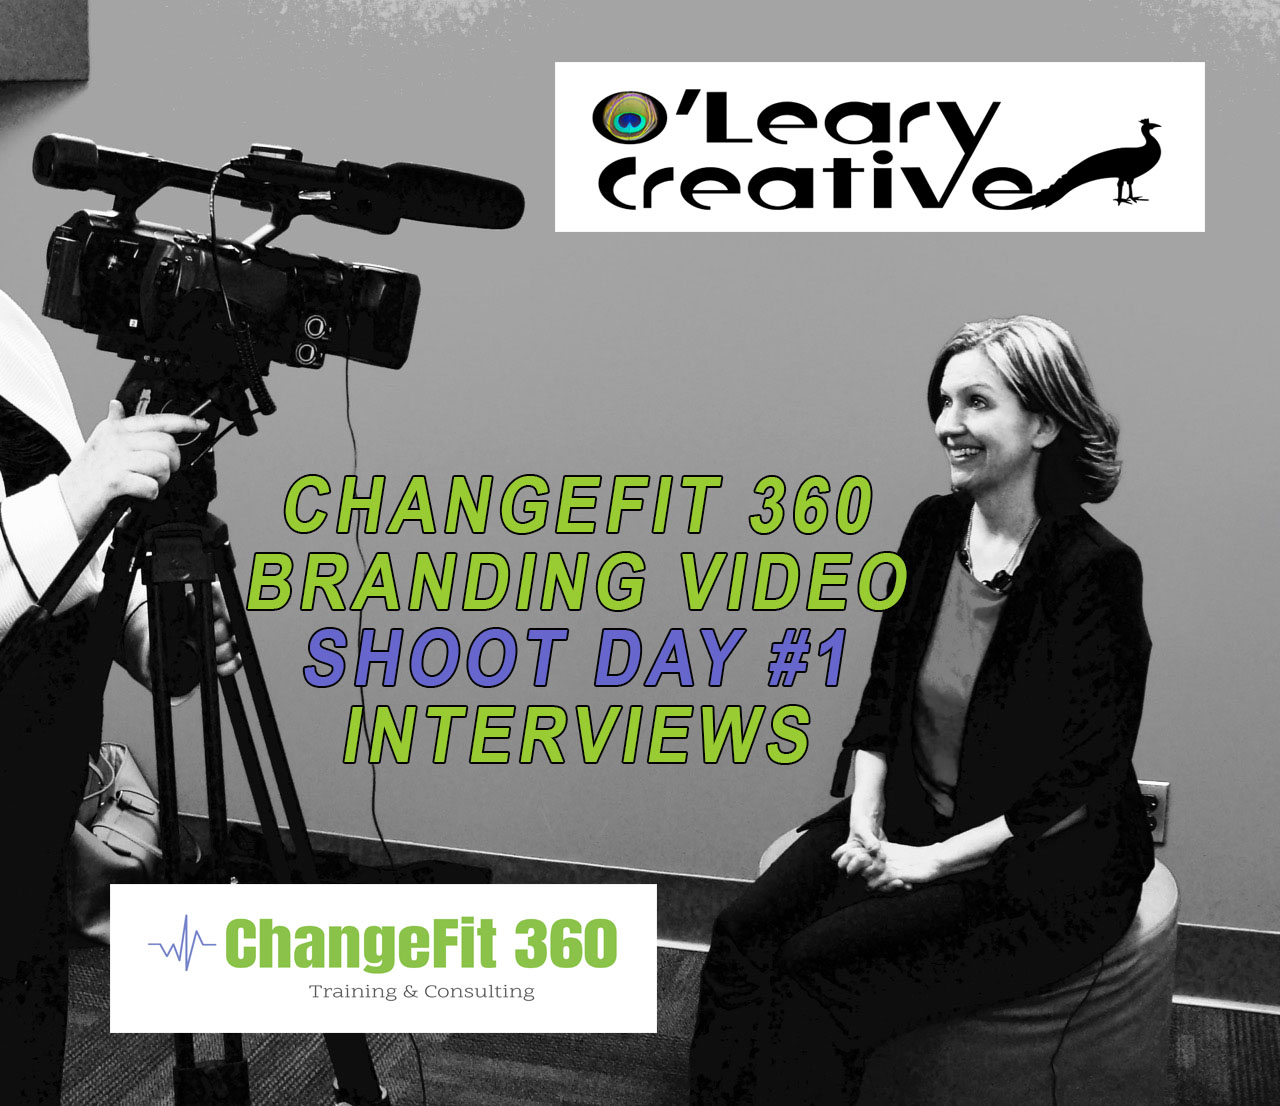 OLearyCreativeChangeFit360VideoShoot1.jpg